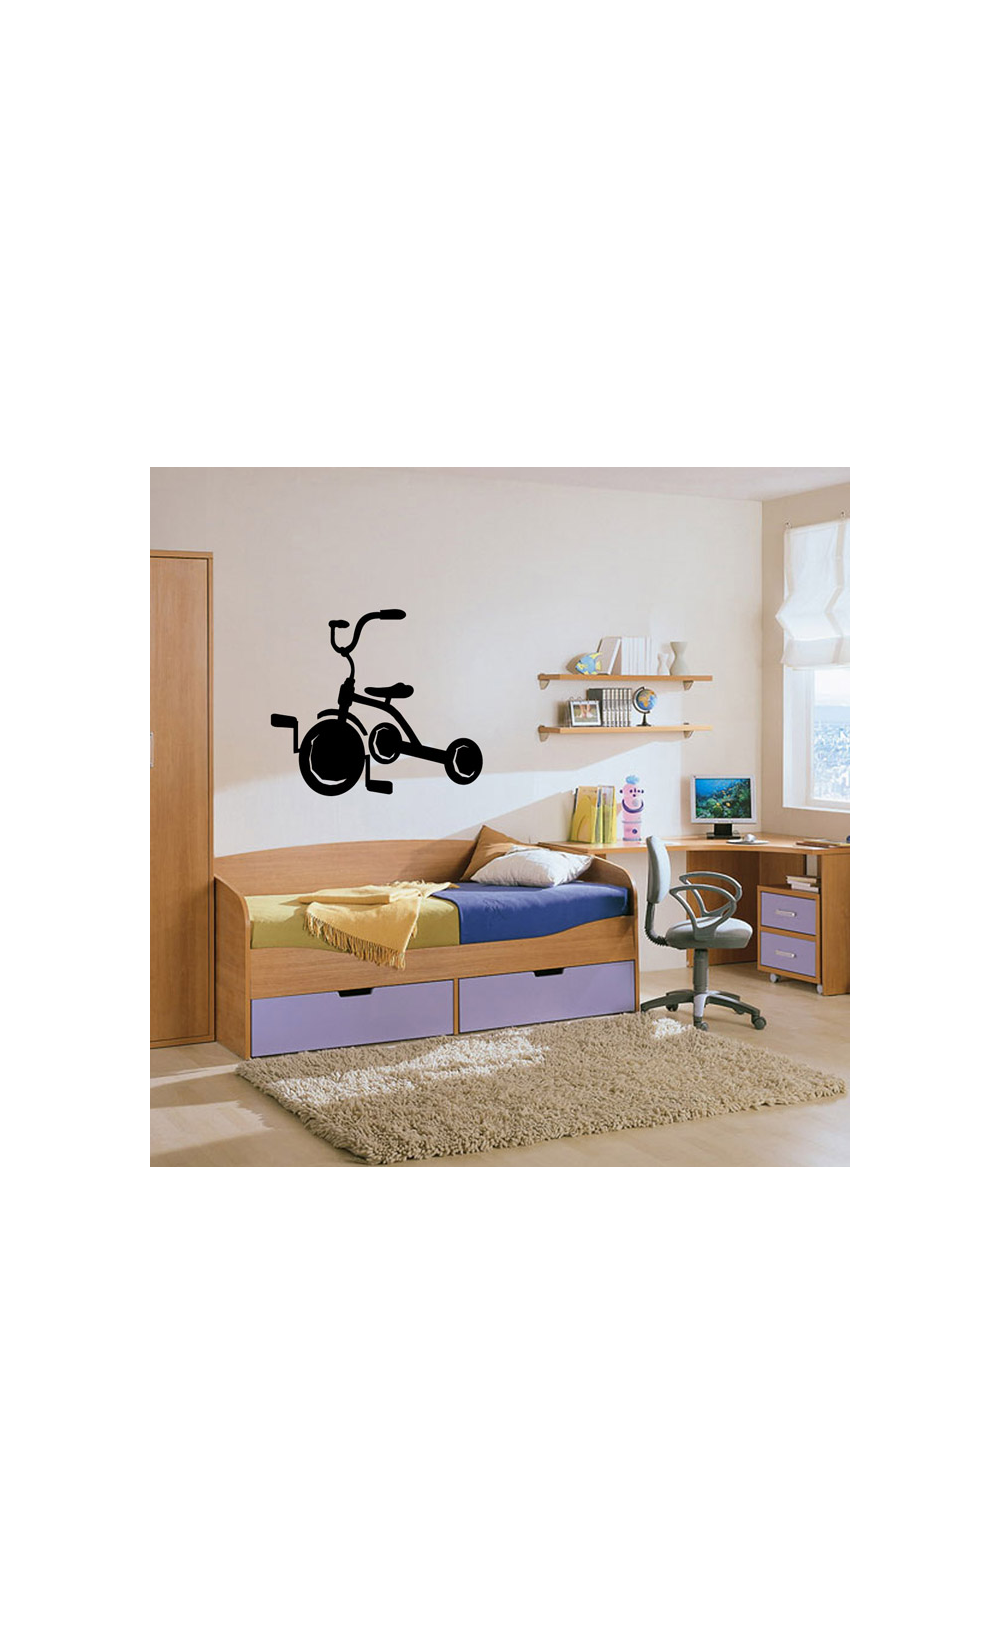 sticker mural pour d corer son int rieur petit prix mod le tricycle. Black Bedroom Furniture Sets. Home Design Ideas